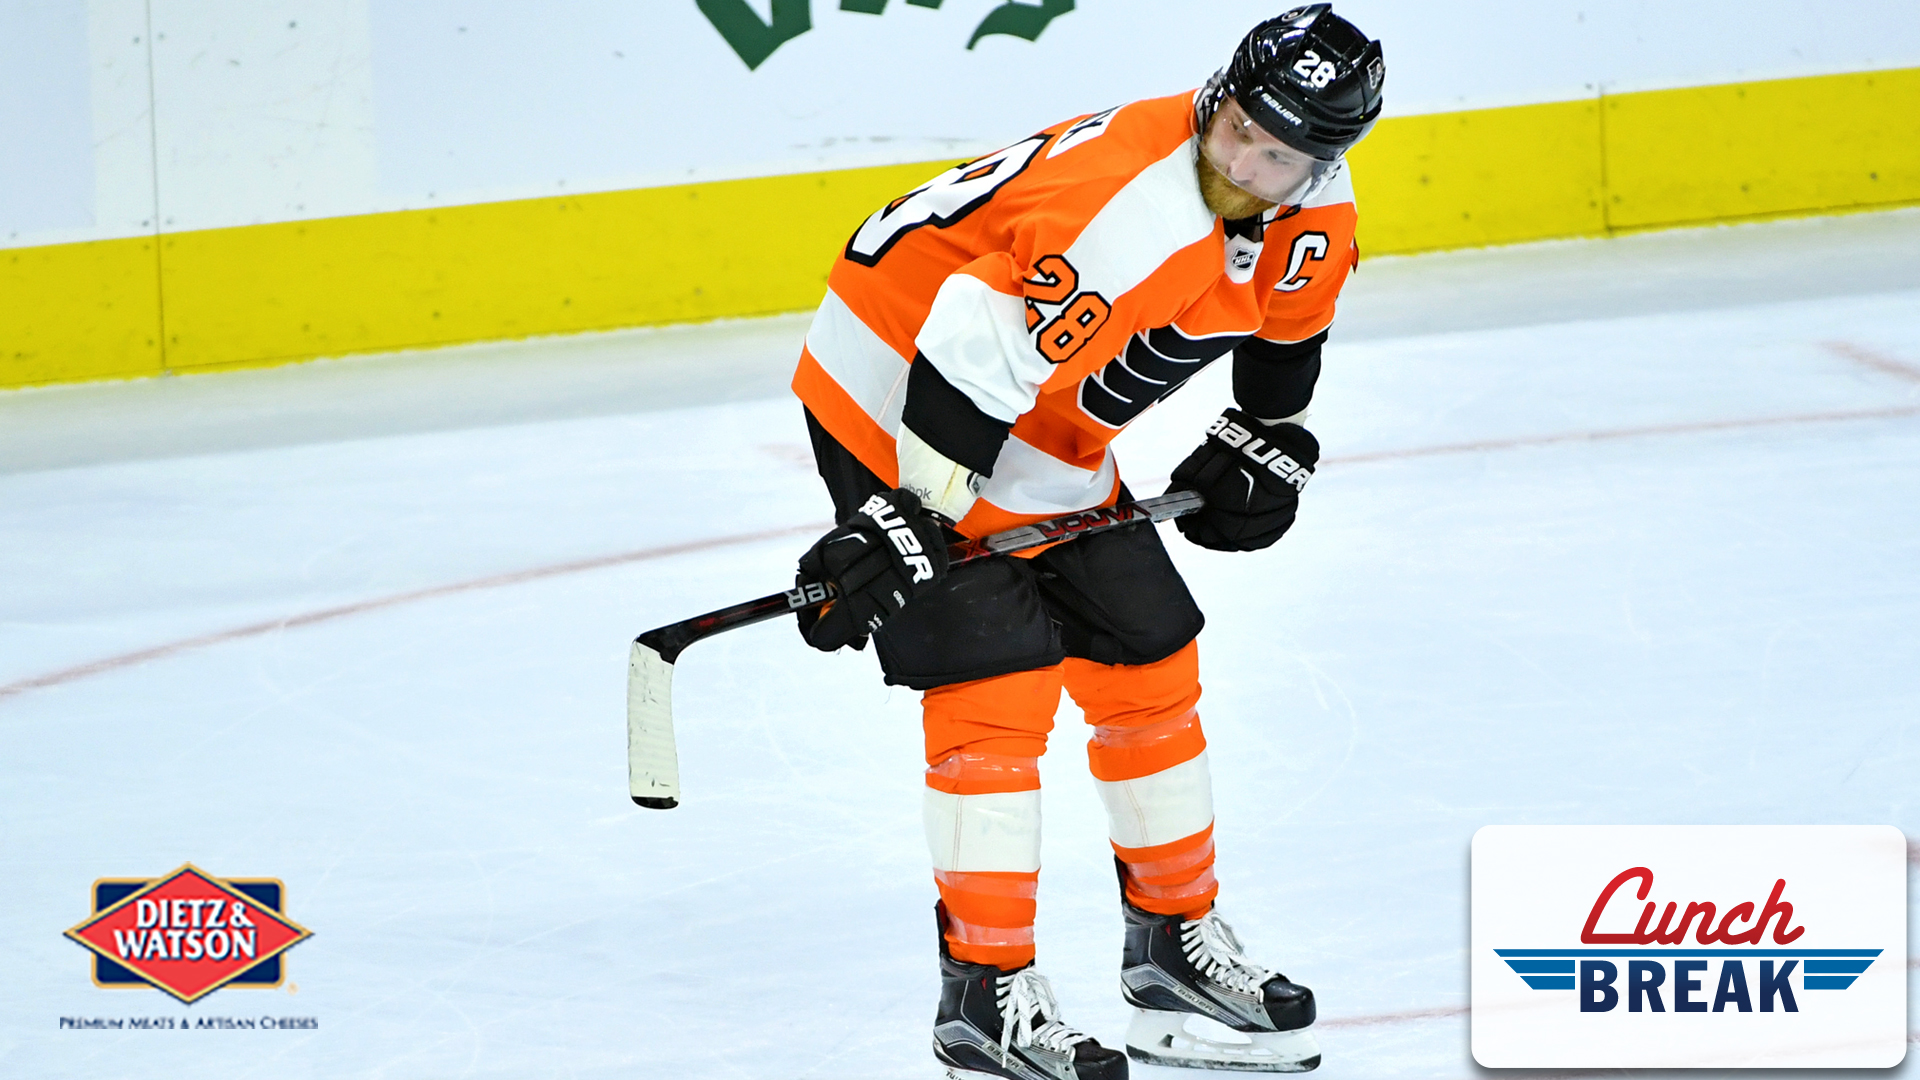 flyers next game